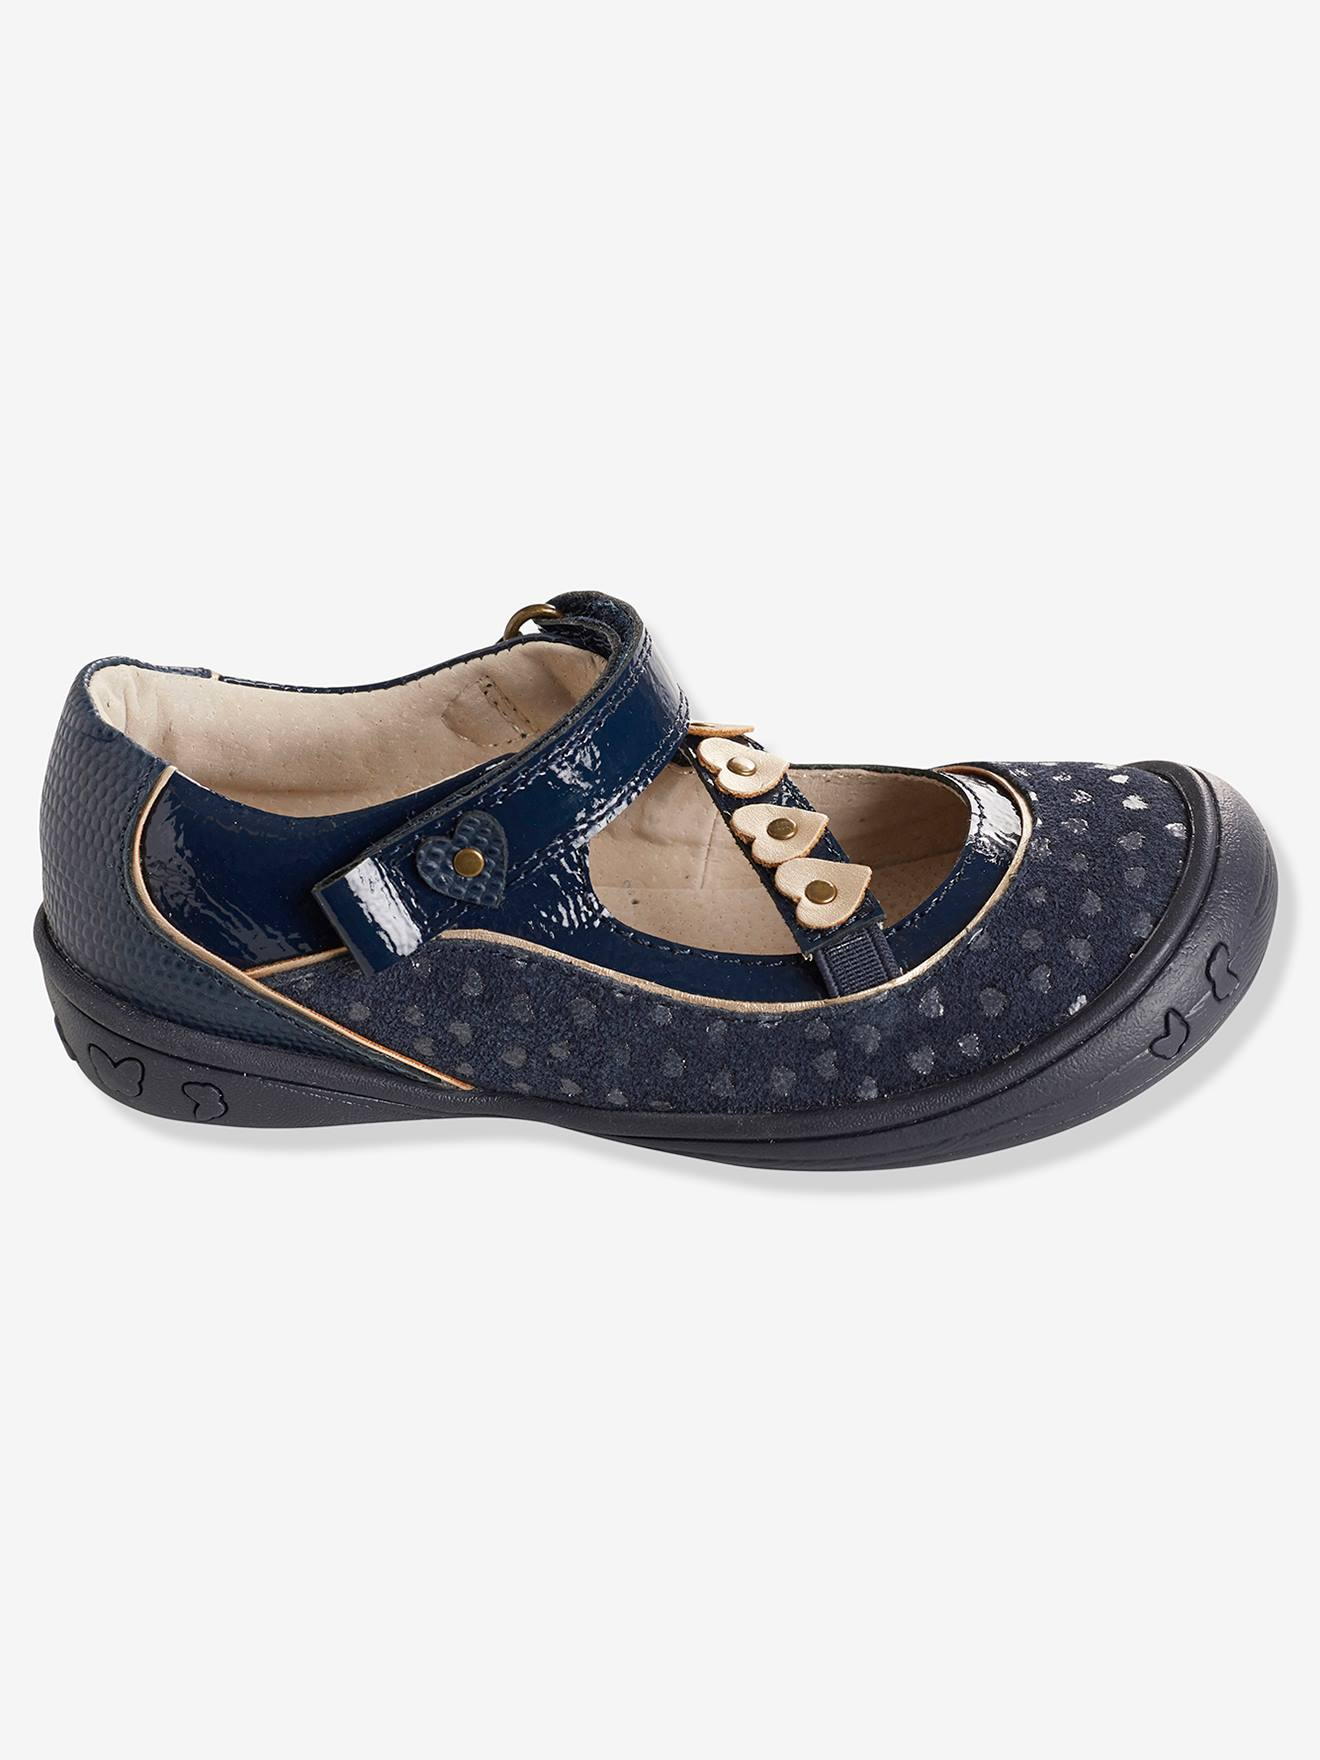 magasin chaussure bebe toulouse chaussures crocs bateau chaussures crocs golf chaussure style. Black Bedroom Furniture Sets. Home Design Ideas